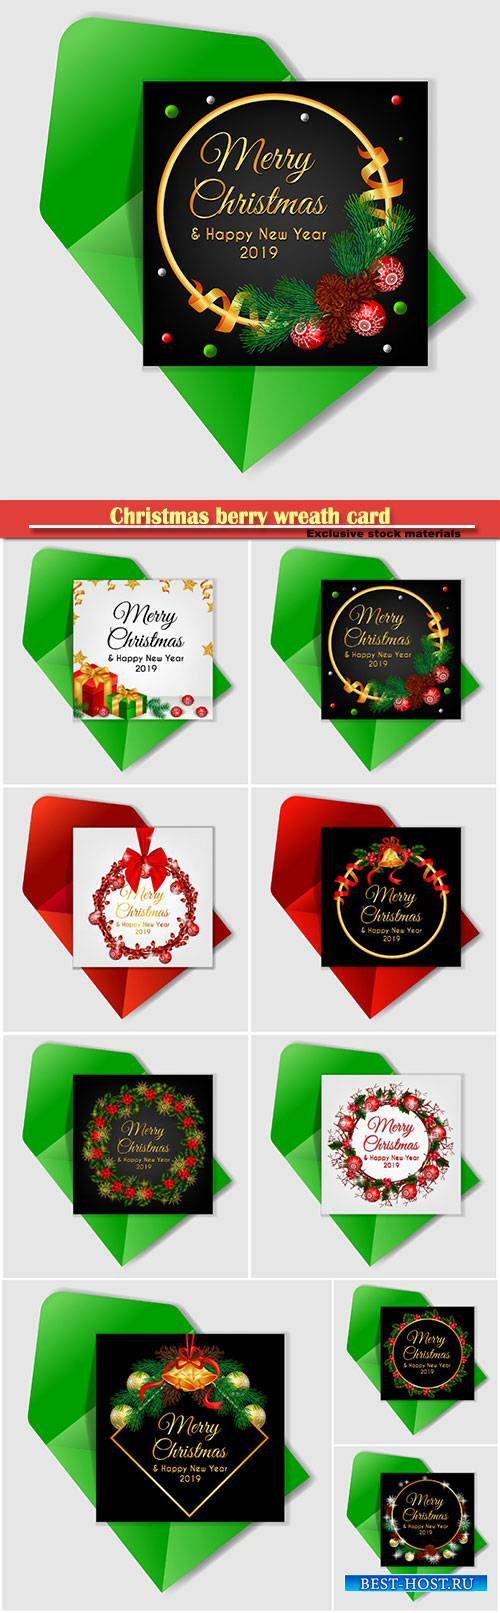 Christmas berry wreath card with jingle bell and red ribbon